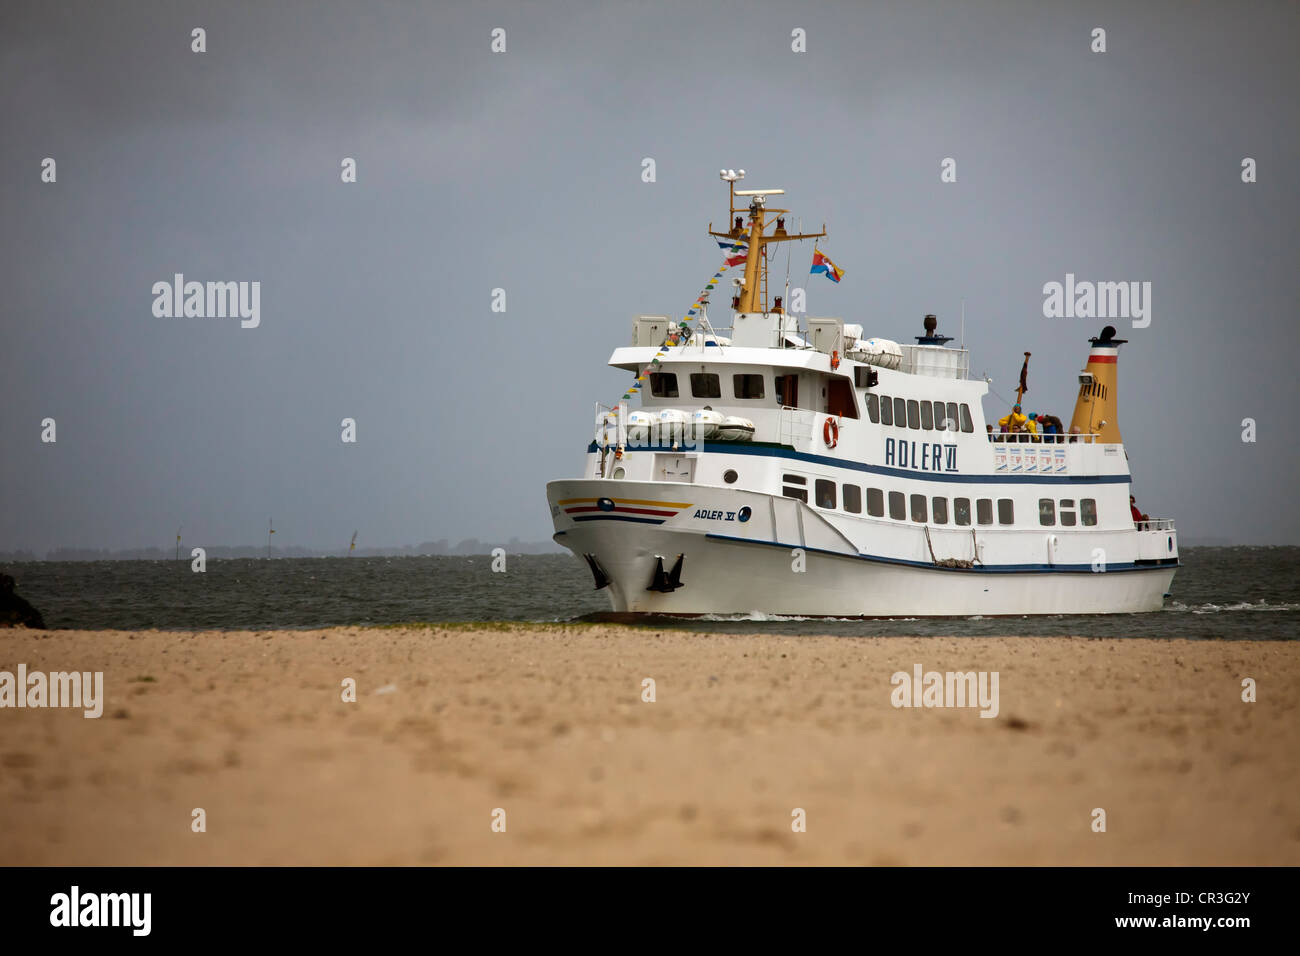 Adler VI ferry, with three decks and room for up to 200 people, Hoernum, North Frisian Island, Schleswig-Holstein Stock Photo